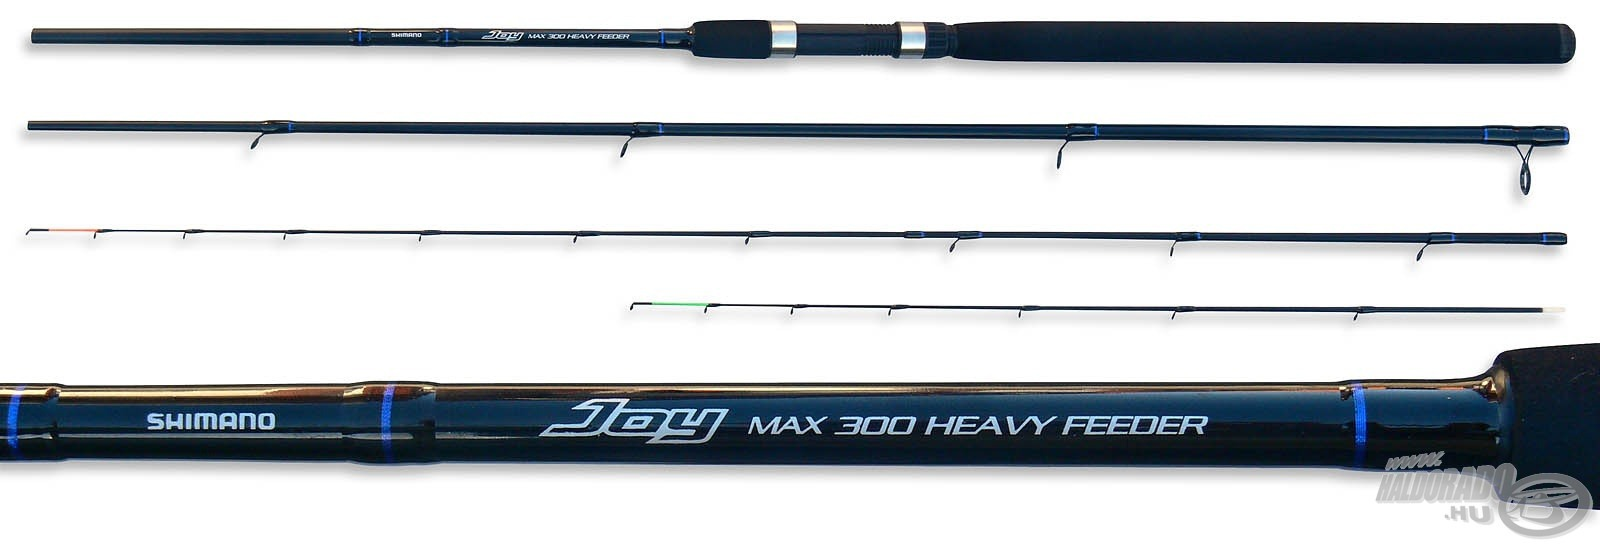 SHIMANO, Joy, Max, Feeder 14990, helyett, 10990Ft